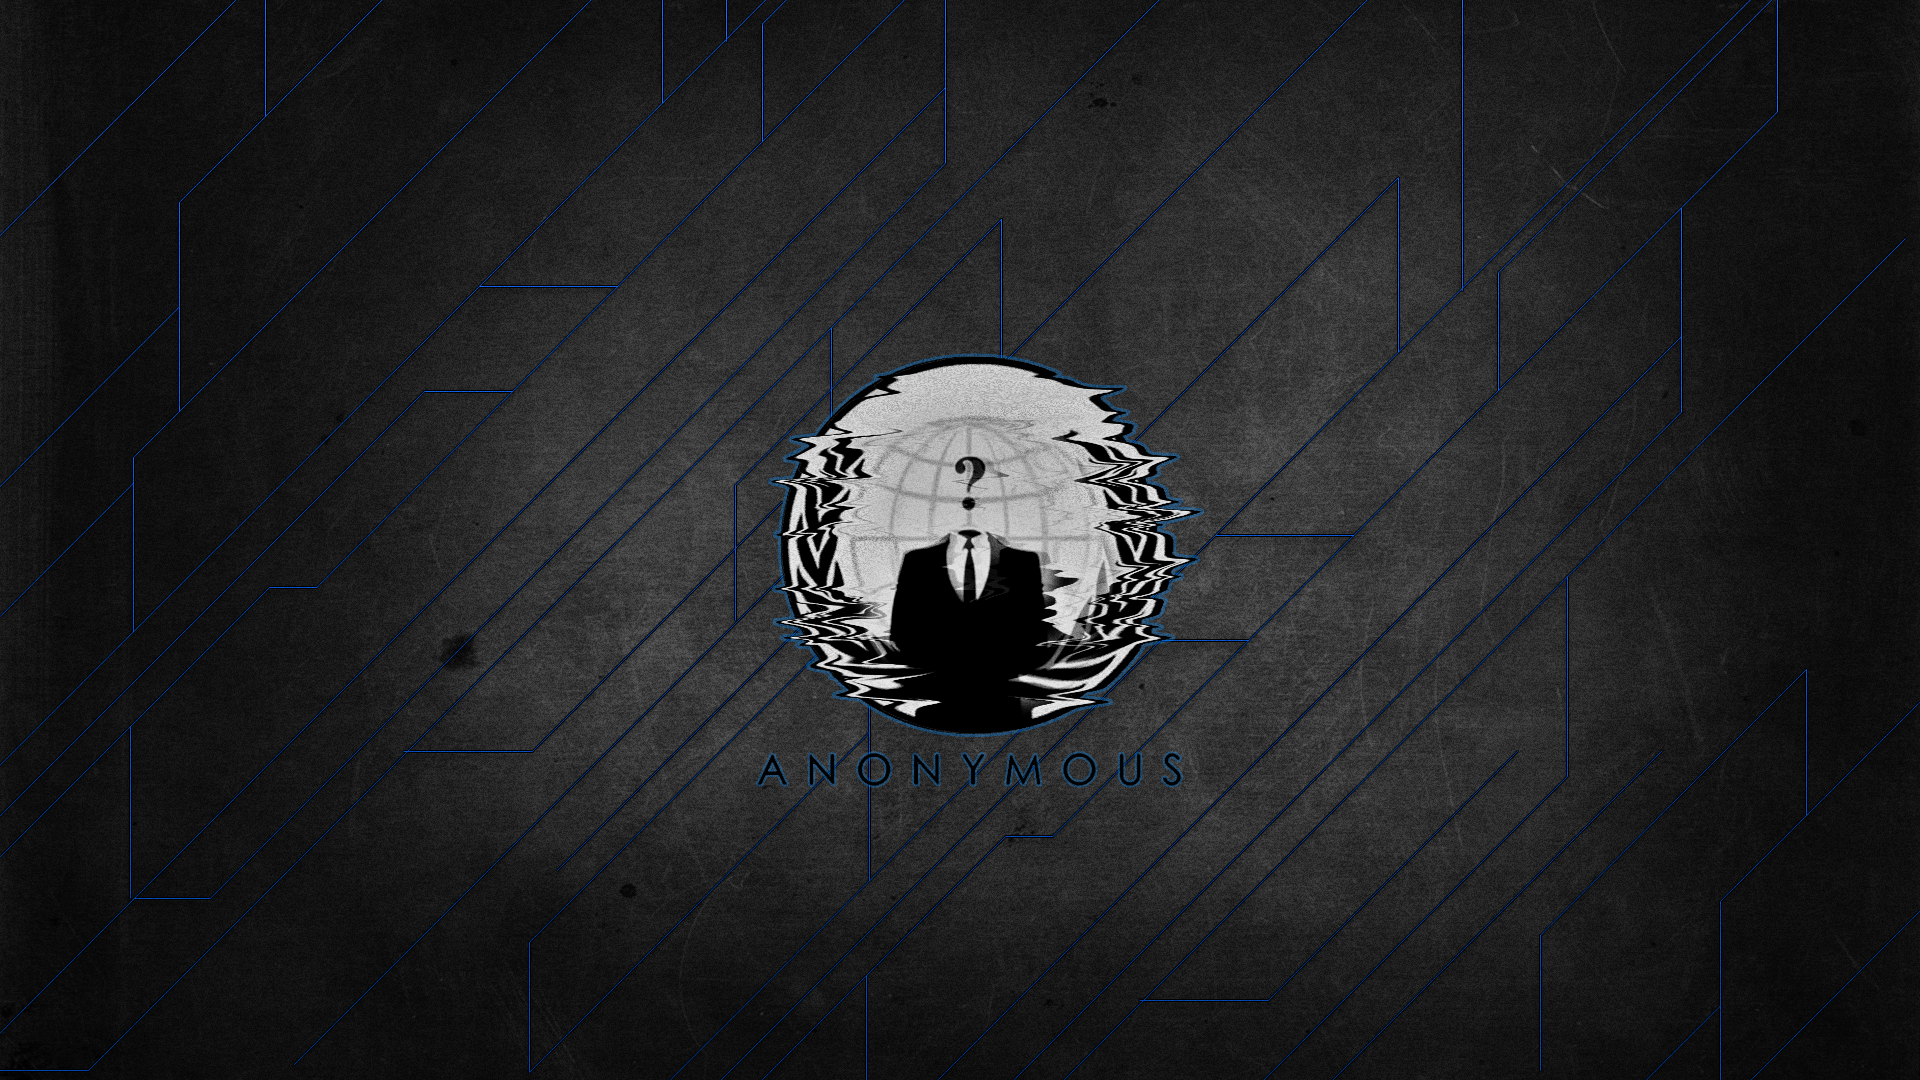 Anonymous Wallpaper 3d image gallery 1920x1080